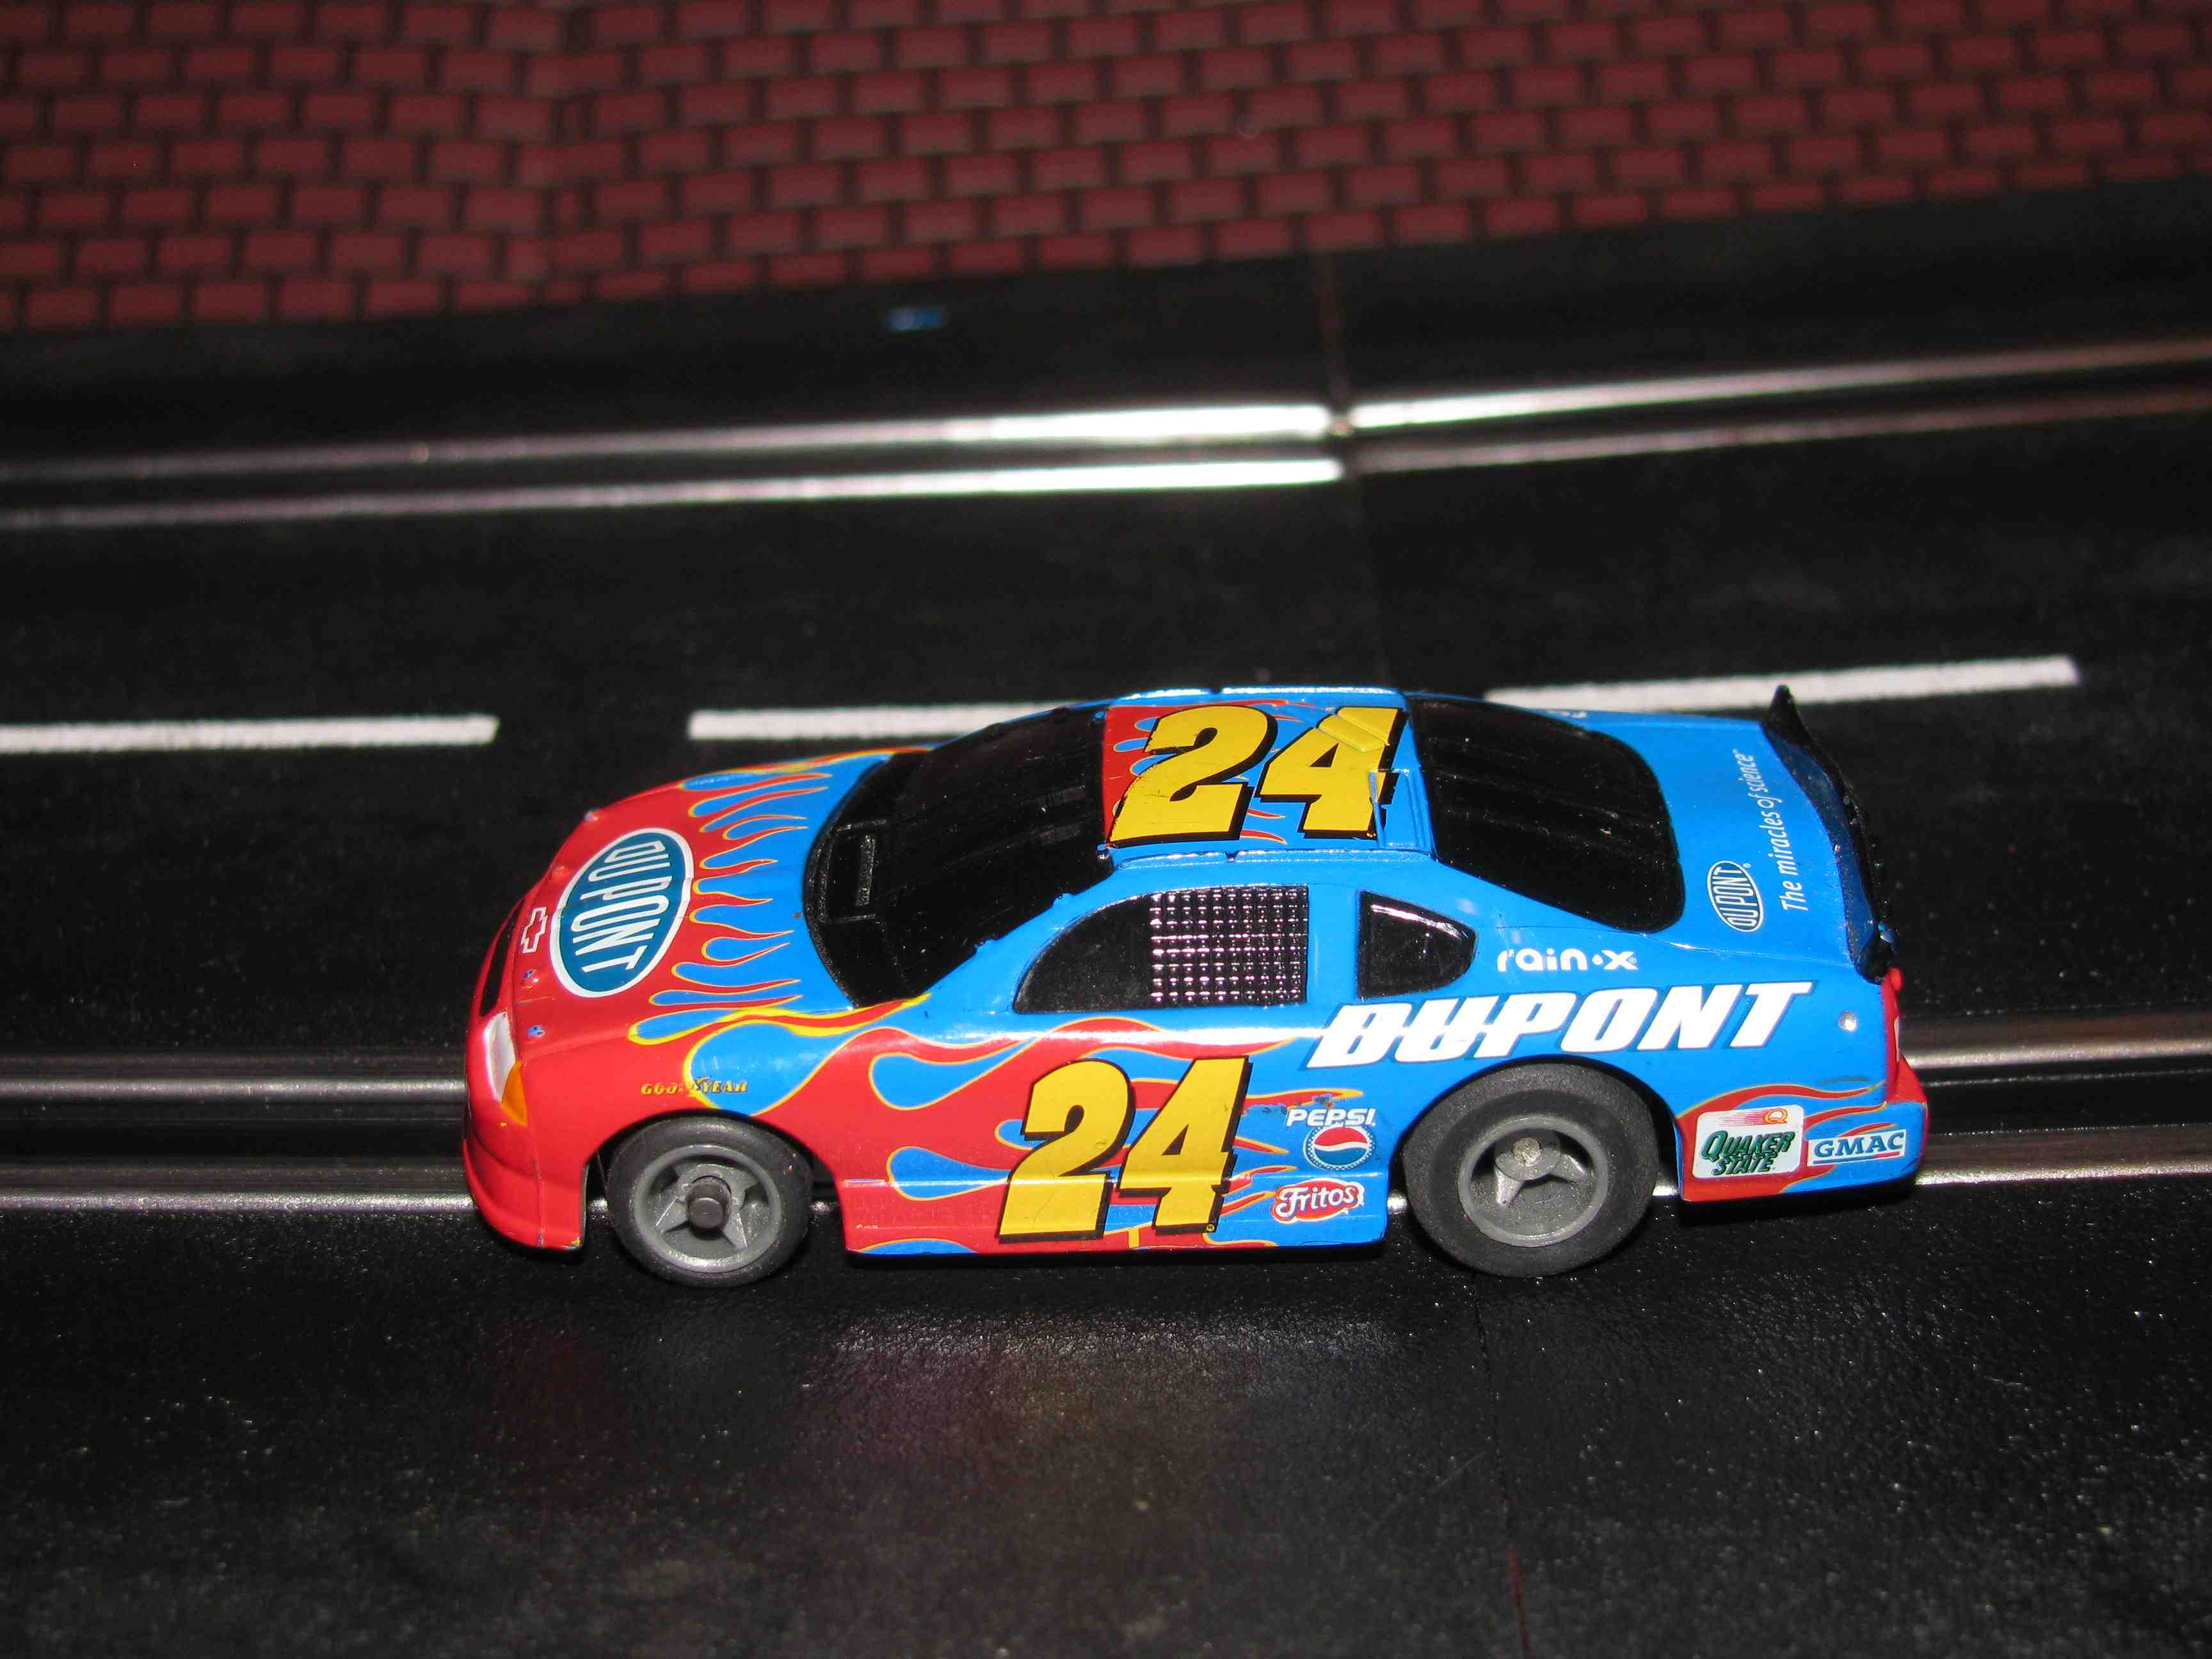 * SOLD * Tyco Like-Like HO Slot Car #24 Monte Carlo (DUPONT) with Guide Post